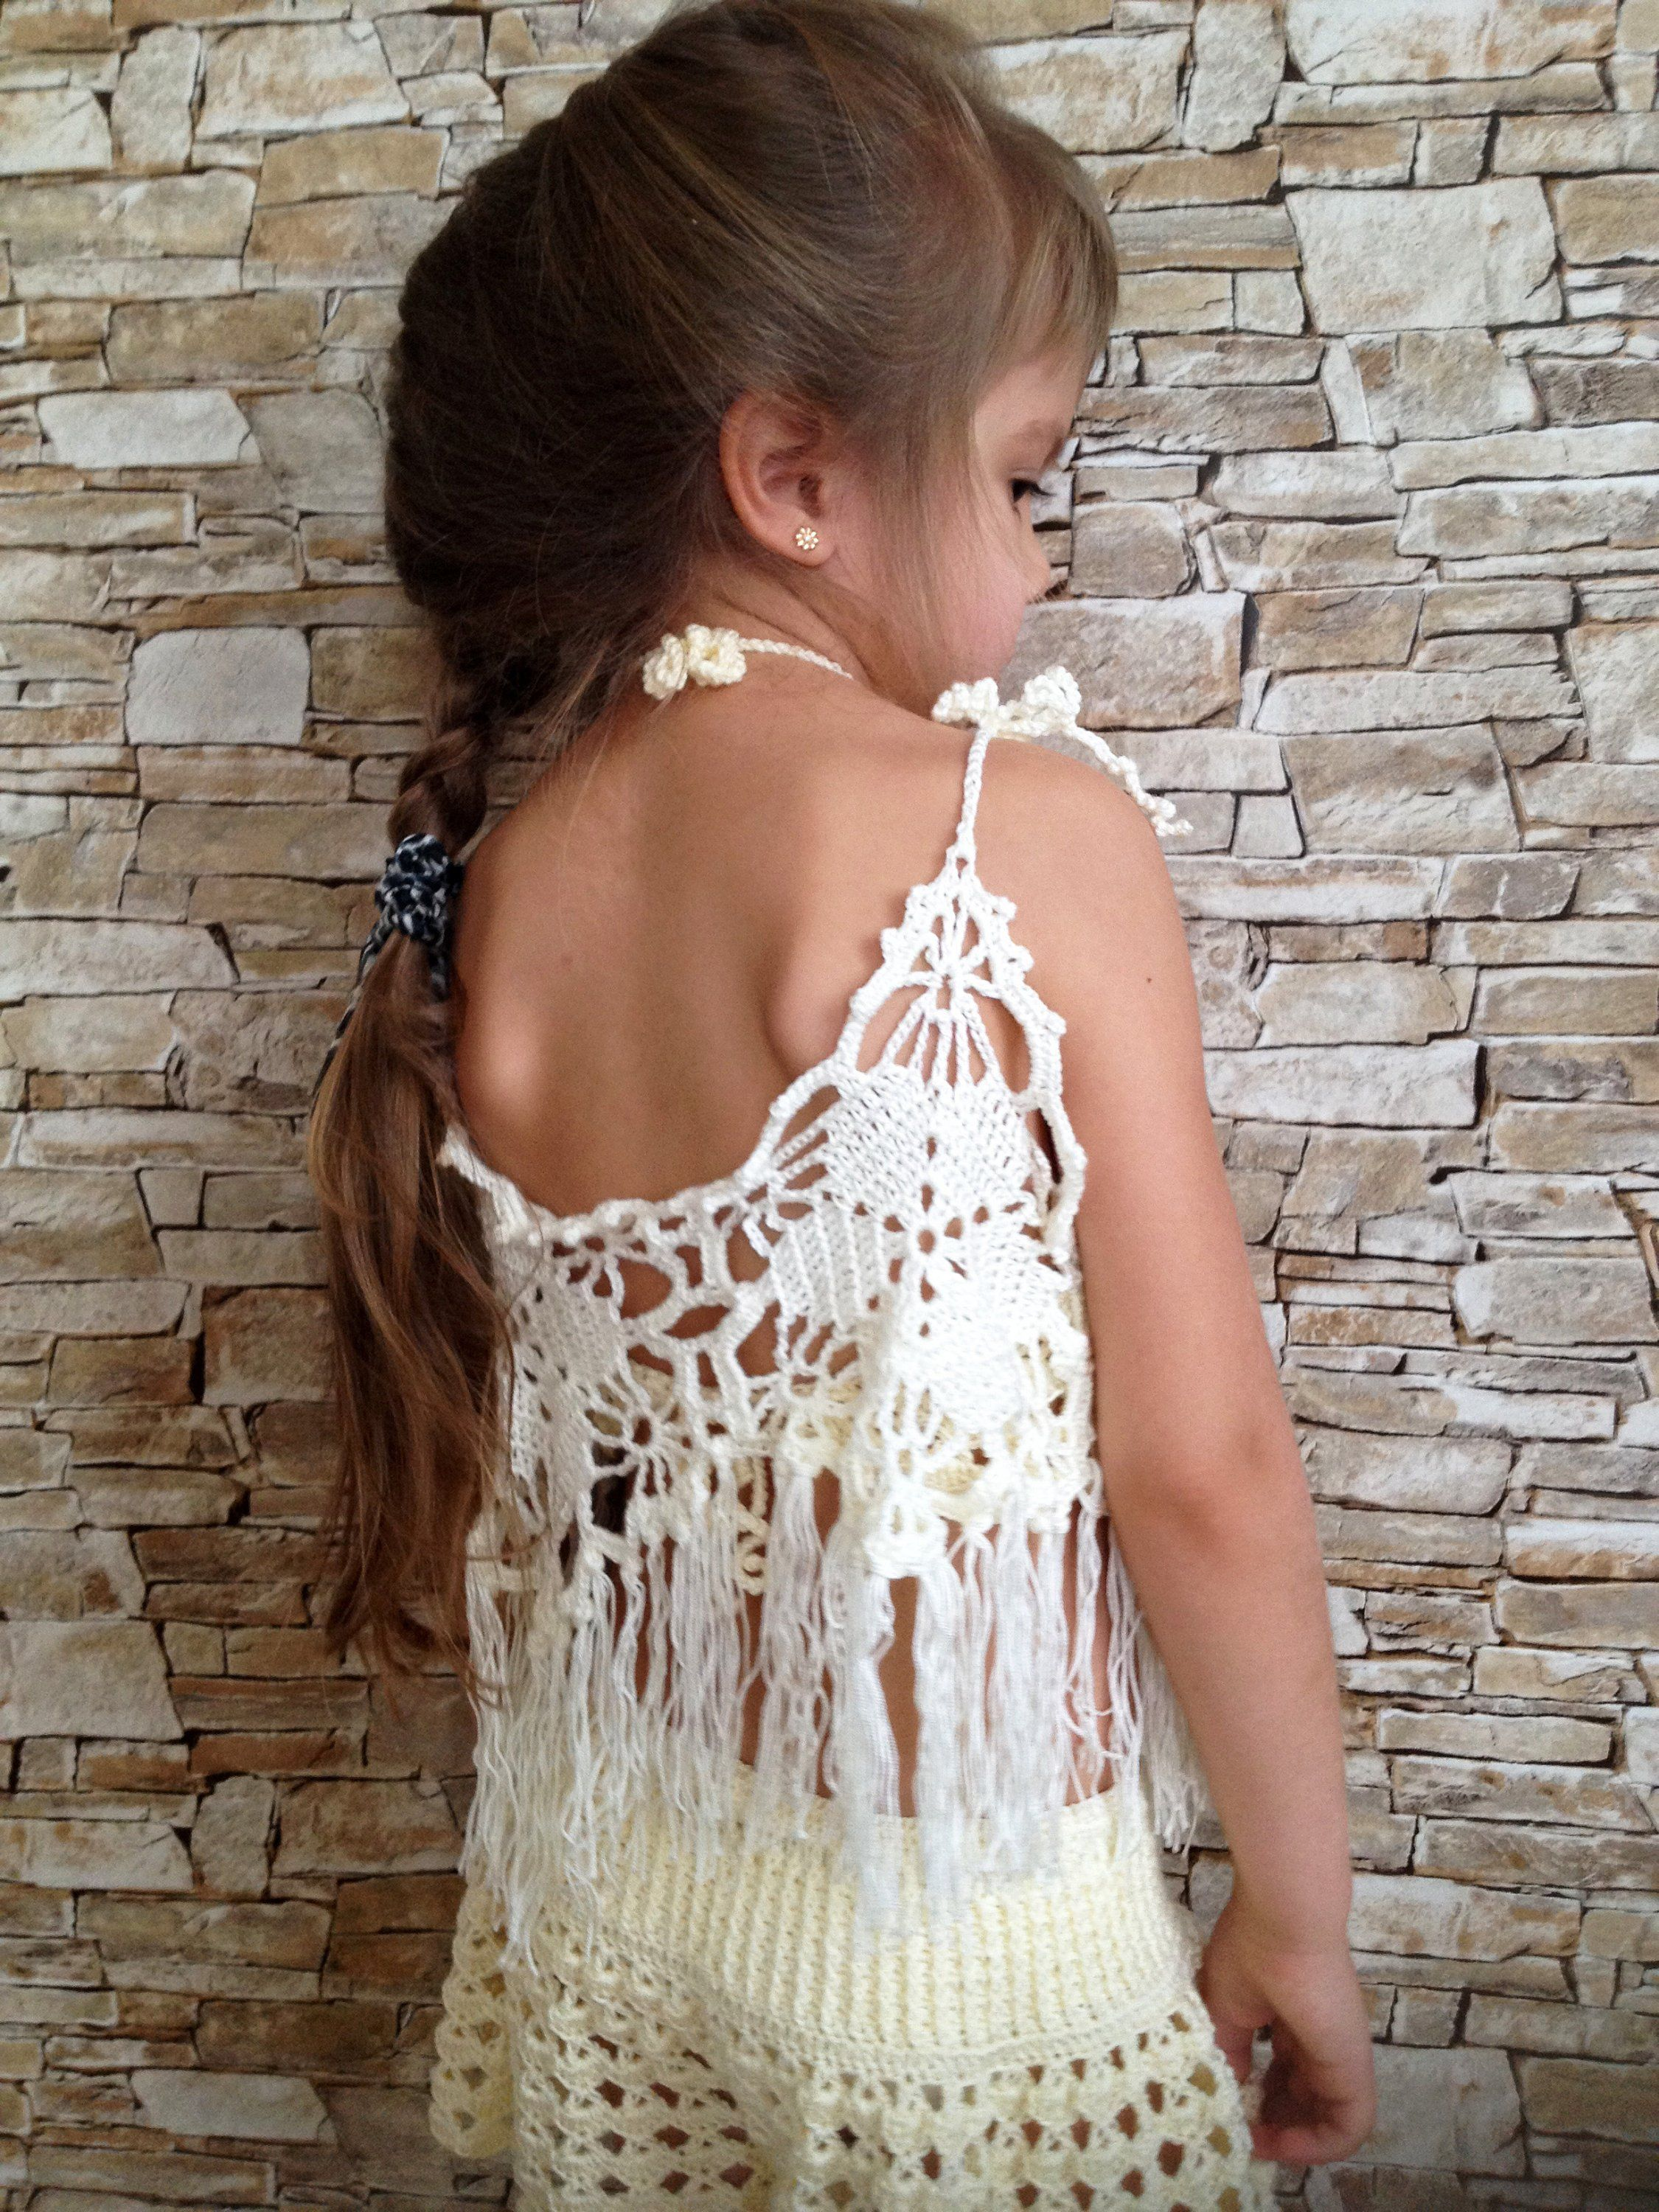 Beach clothing for kids Crochet toddler set top and shorts Ivory crochet lace shorts crop top Toddler outfit Open back top Crochet shorts